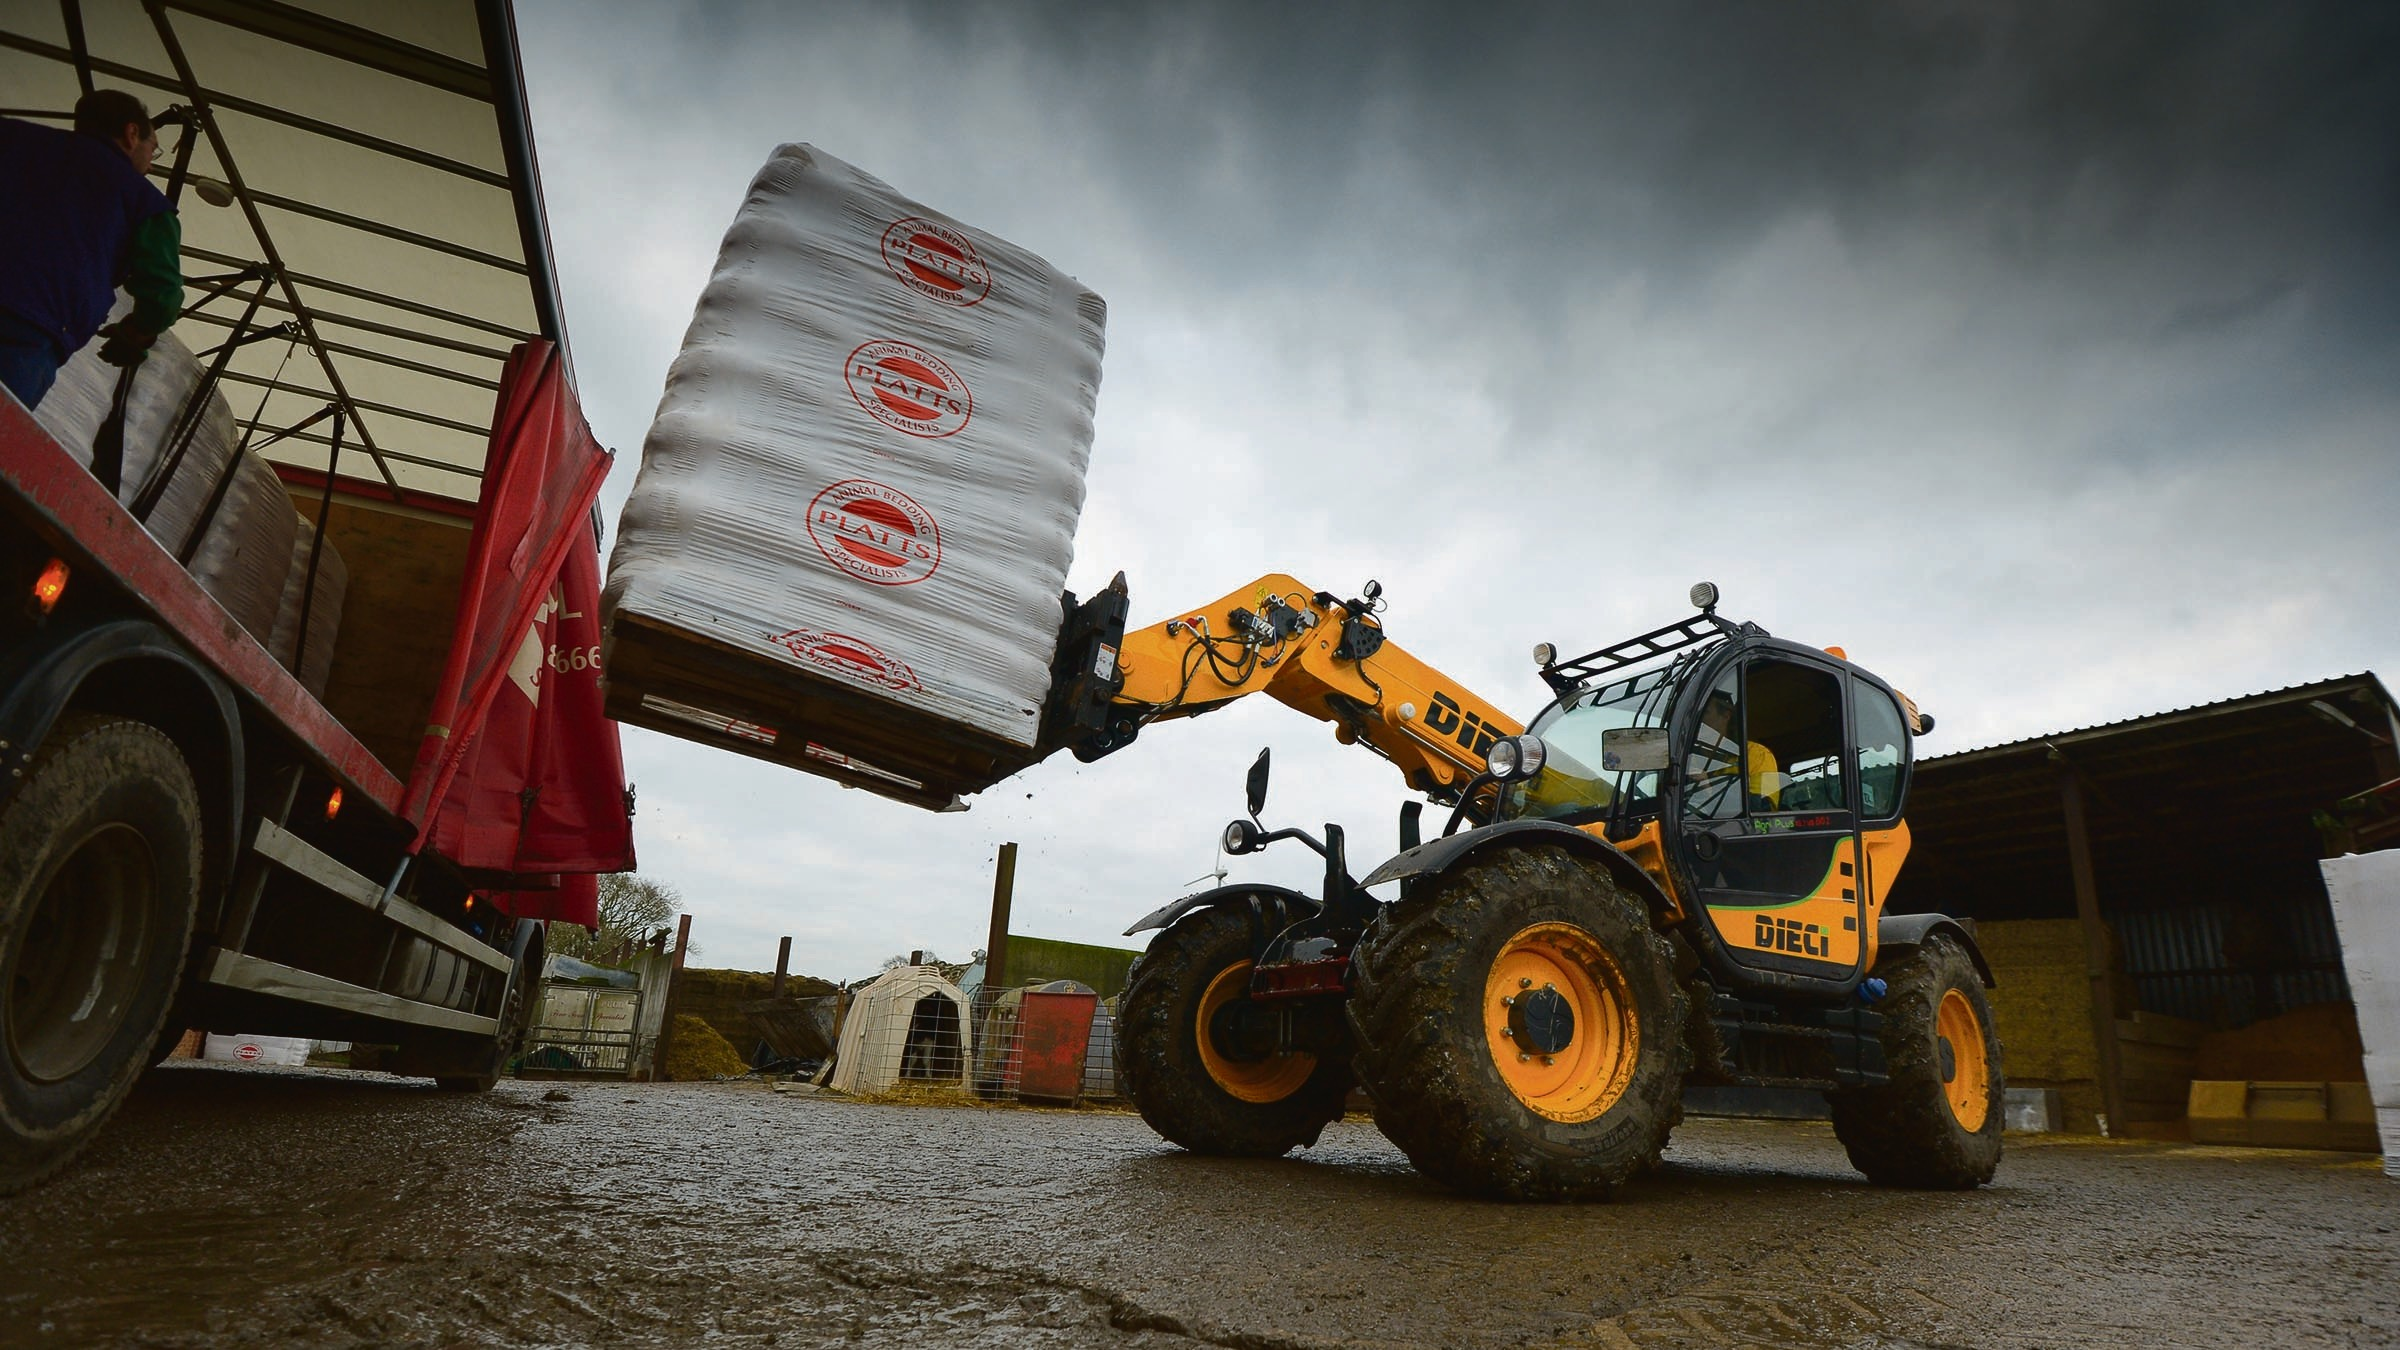 On Test: Dieci ready to rattle old guard with new telehandler